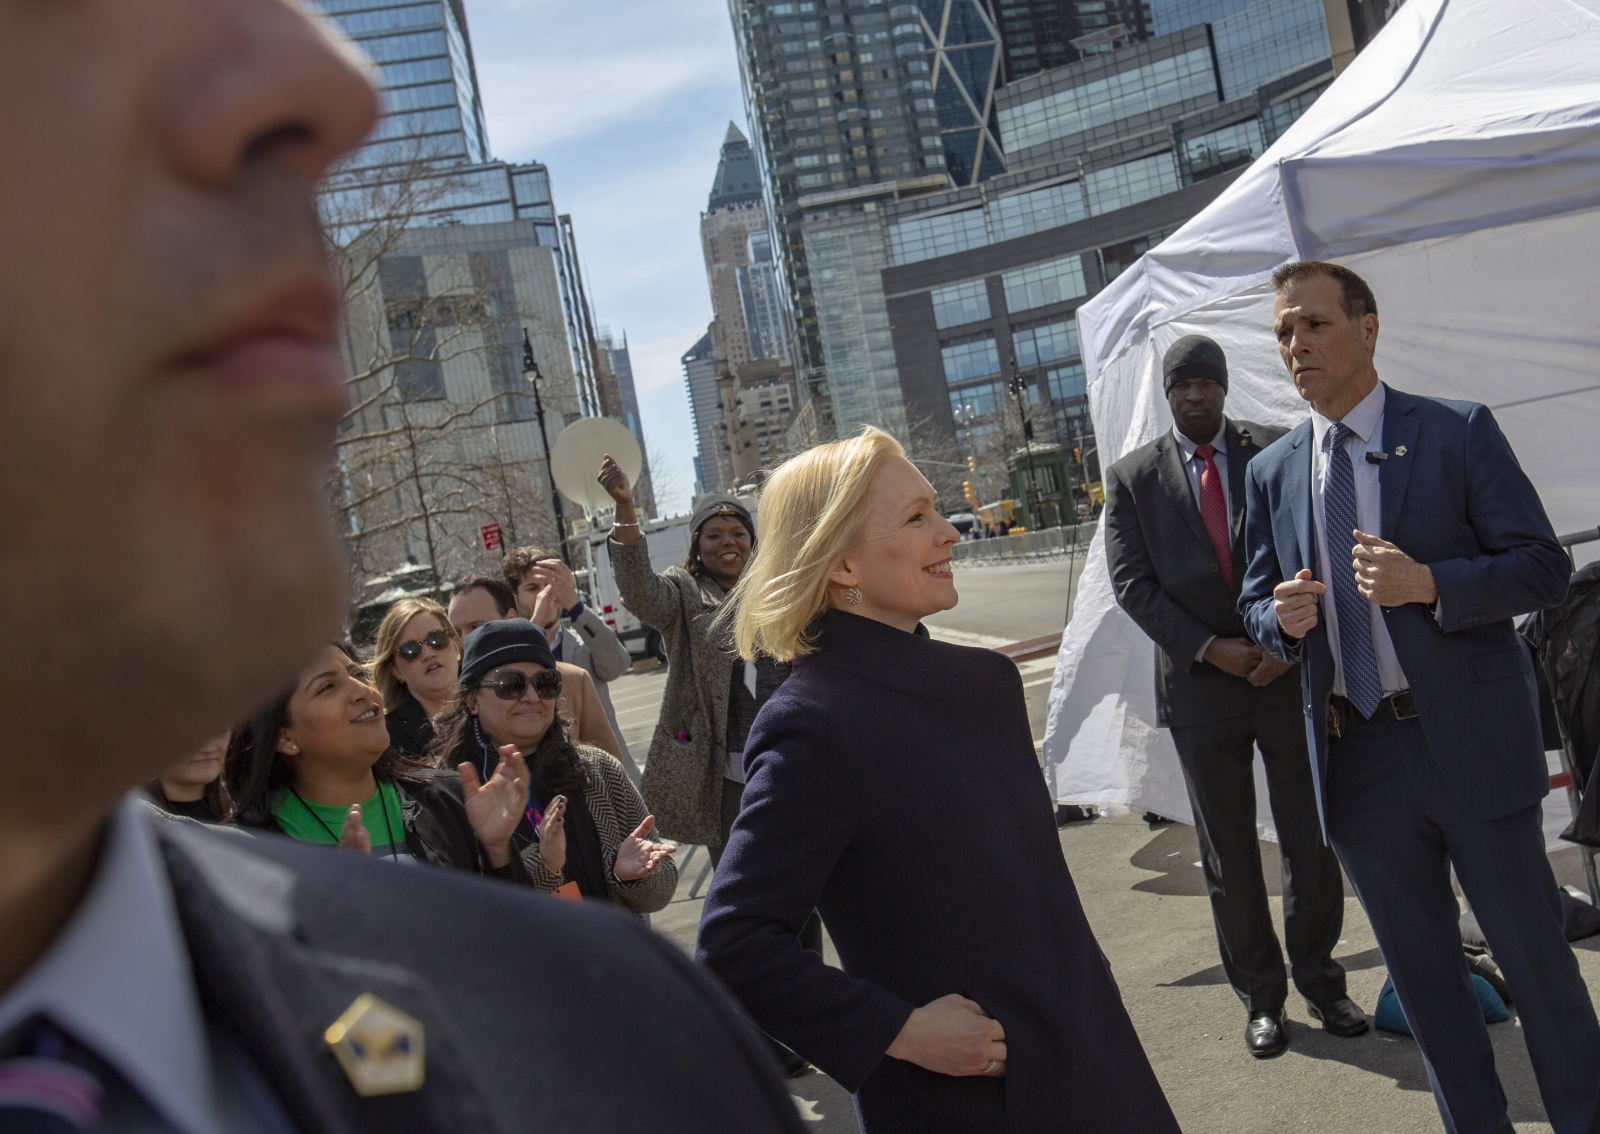 United States Senator Kirsten Gillibrand kicks off her presidential campaign in Manhattan in front of Trump International Hotel, New York, March 24, 2019